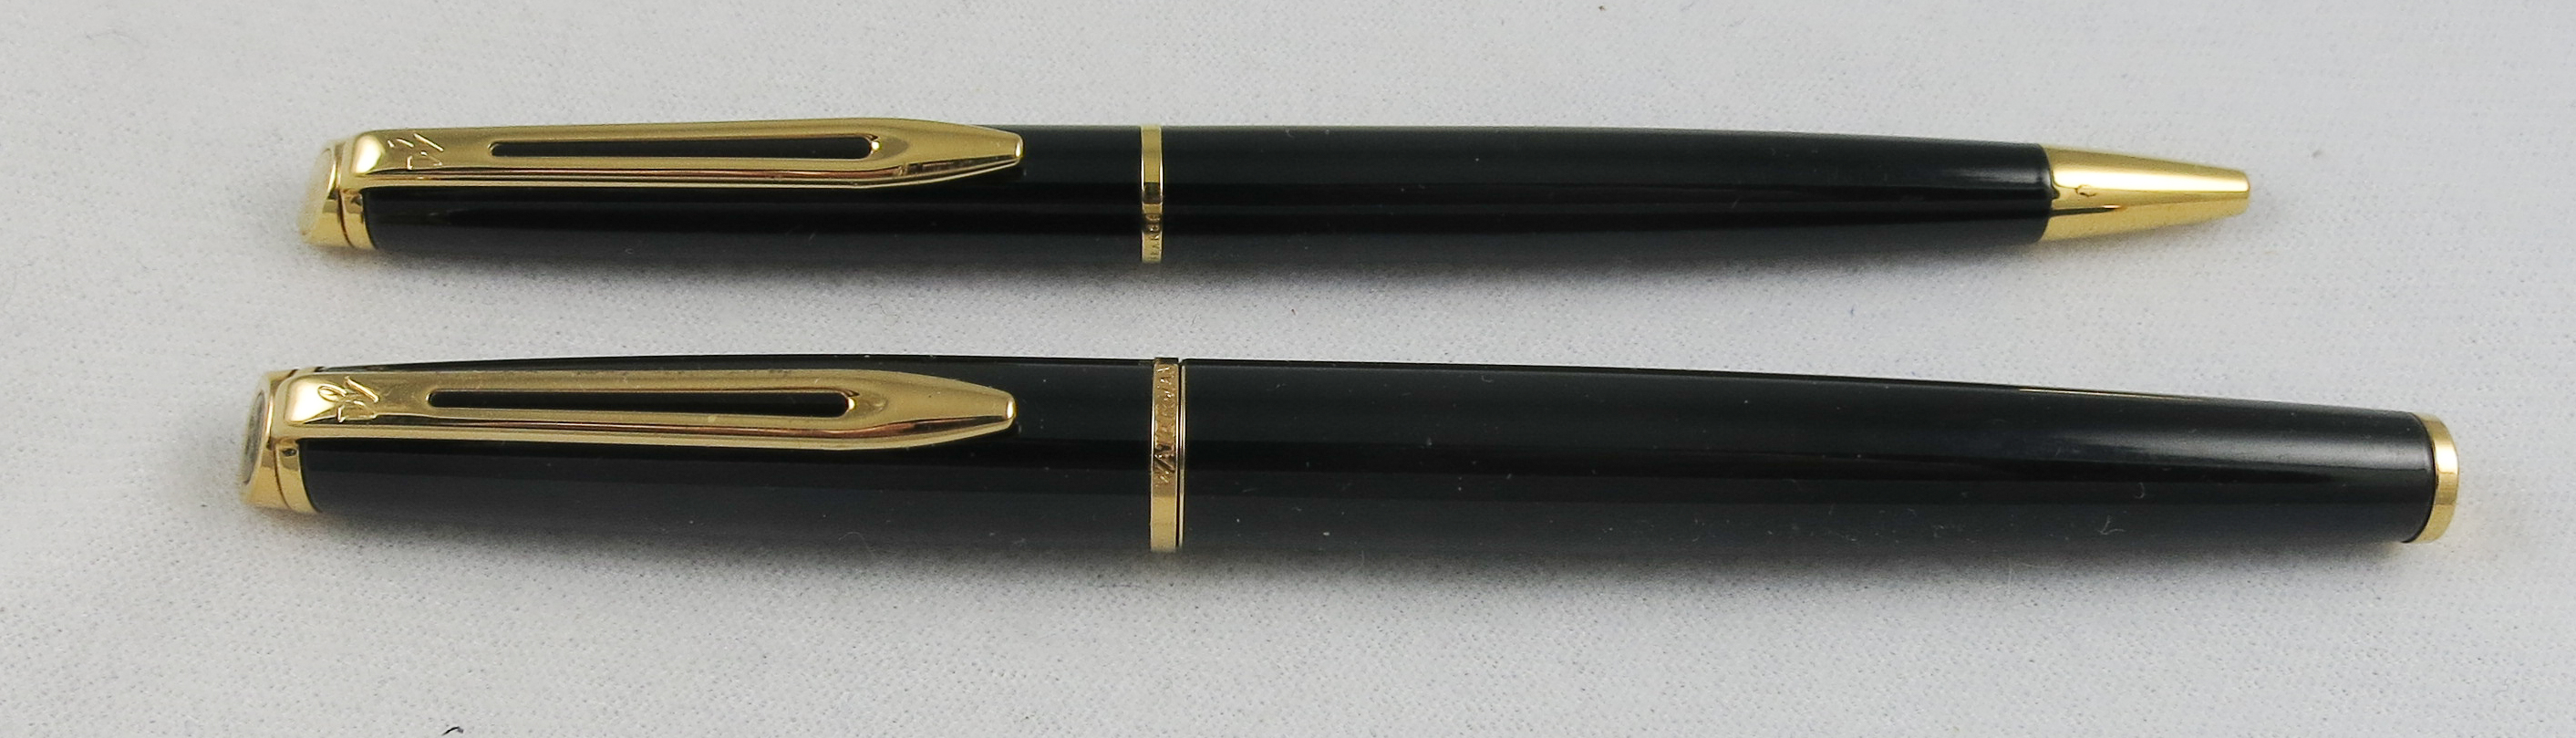 French Waterman Hemisphere ROLLER BALL/BALL POINT set (Pen 2162)